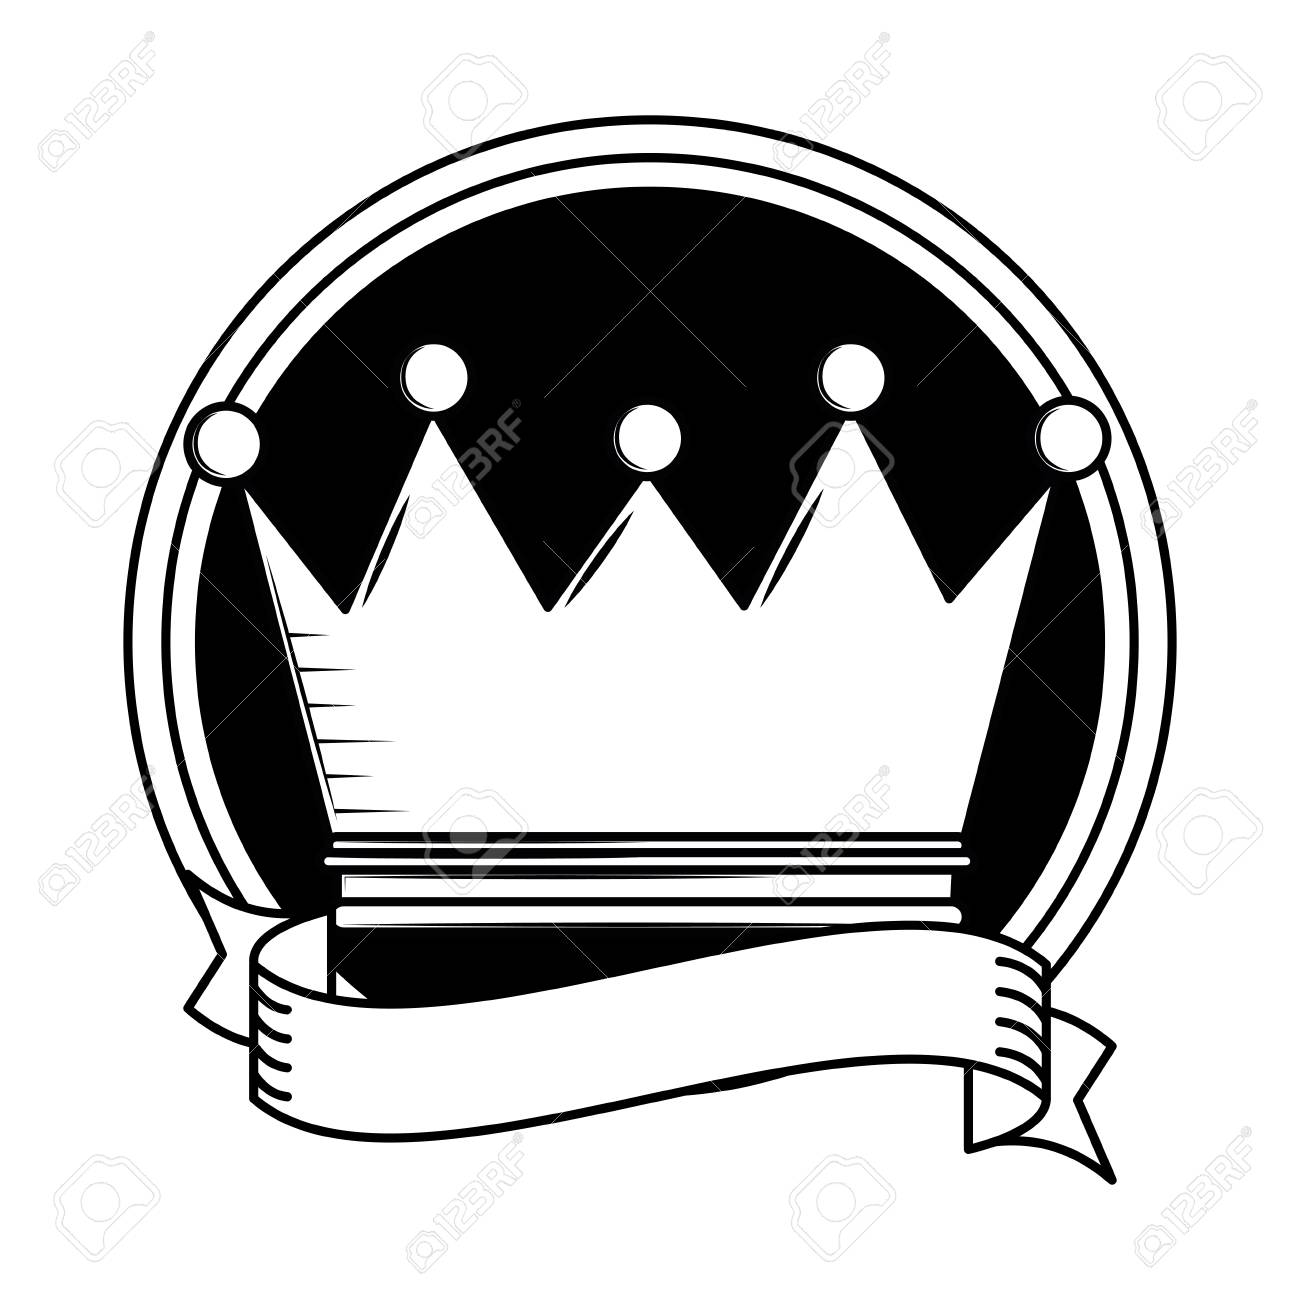 King Crown Cartoon Round Frame With Blank Ribbon Banner Vector Royalty Free Cliparts Vectors And Stock Illustration Image 127694287 Skull in crown, lions and crossed swords. king crown cartoon round frame with blank ribbon banner vector